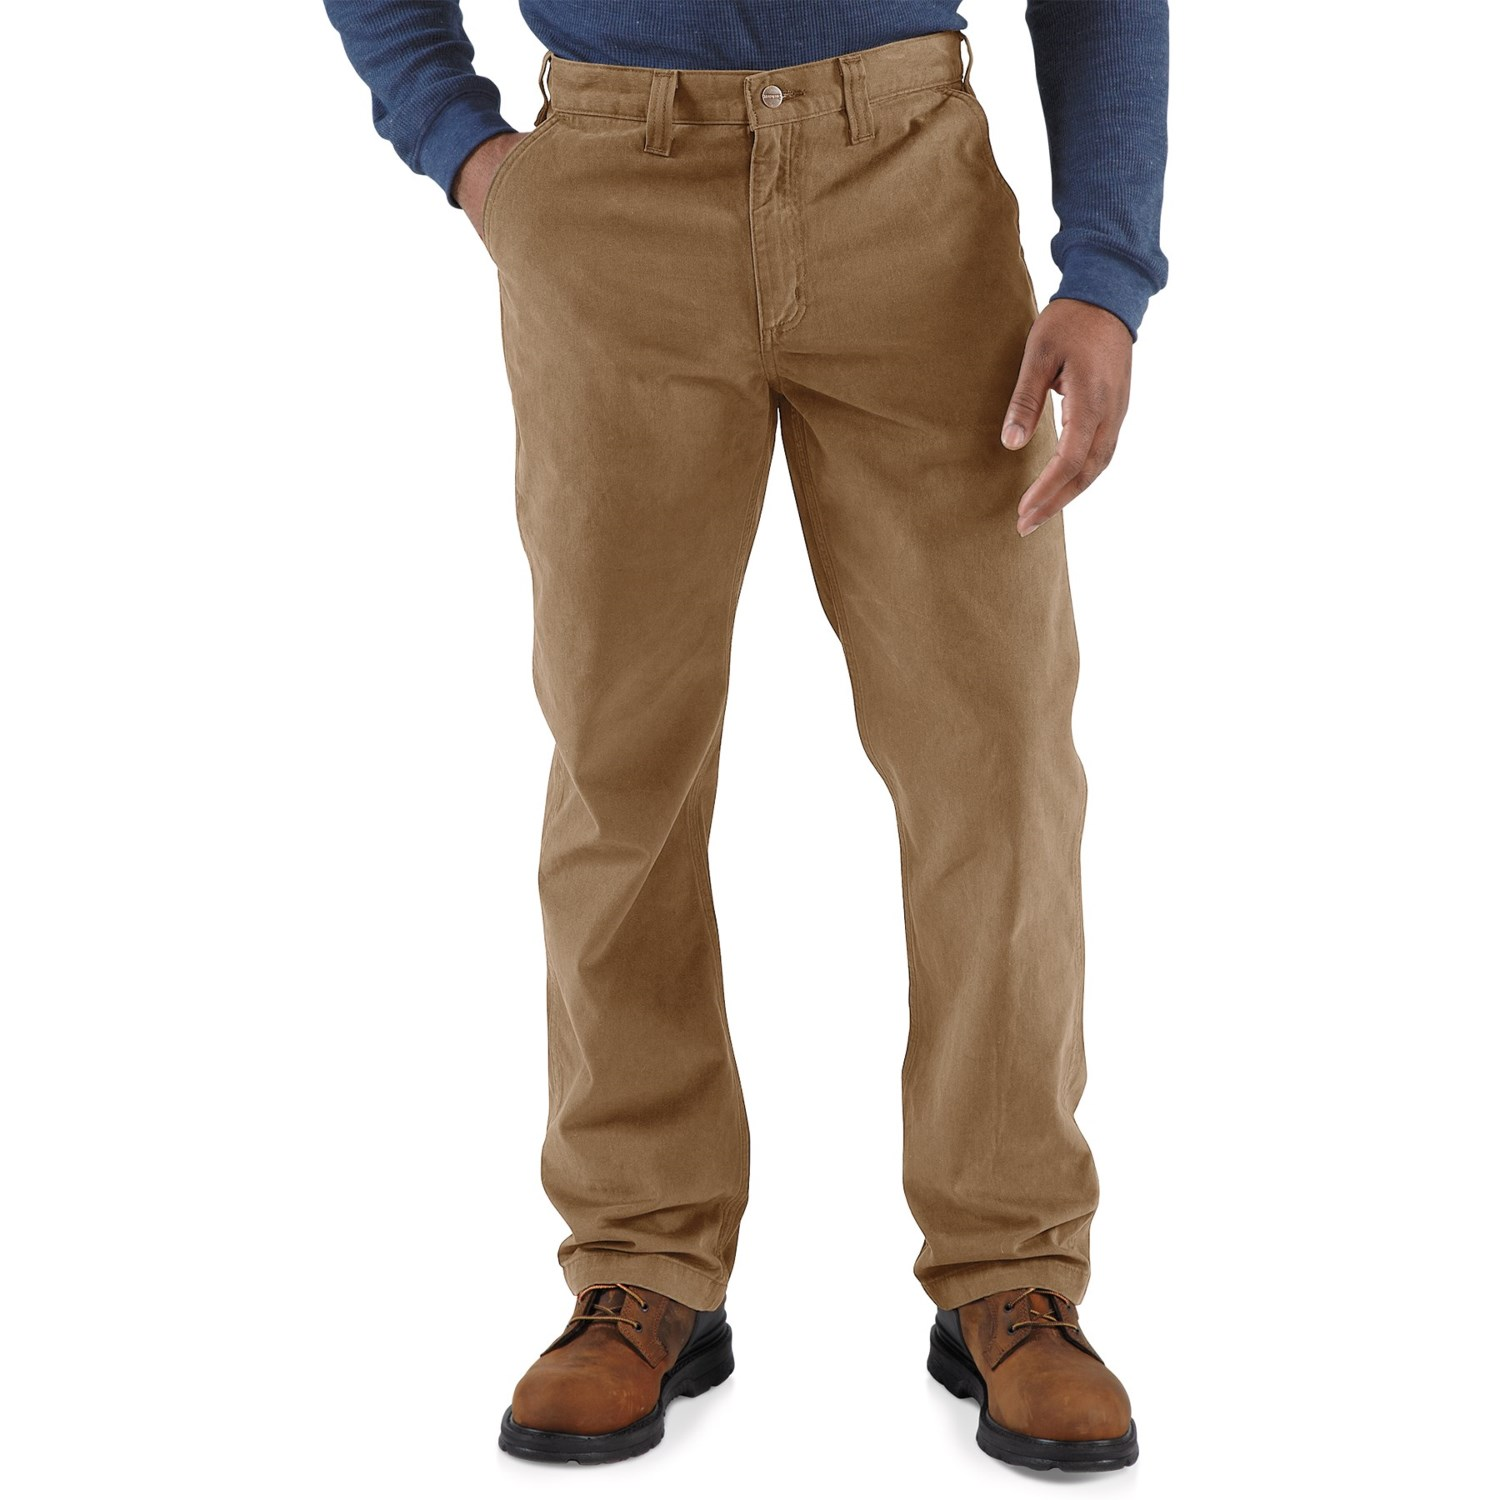 Introducing the Jean Cut Khaki, Dockers® khaki jeans for men, now in a range of colors, fabrics, and styles. Shop the khakis you love in a casual jeans-inspired look.